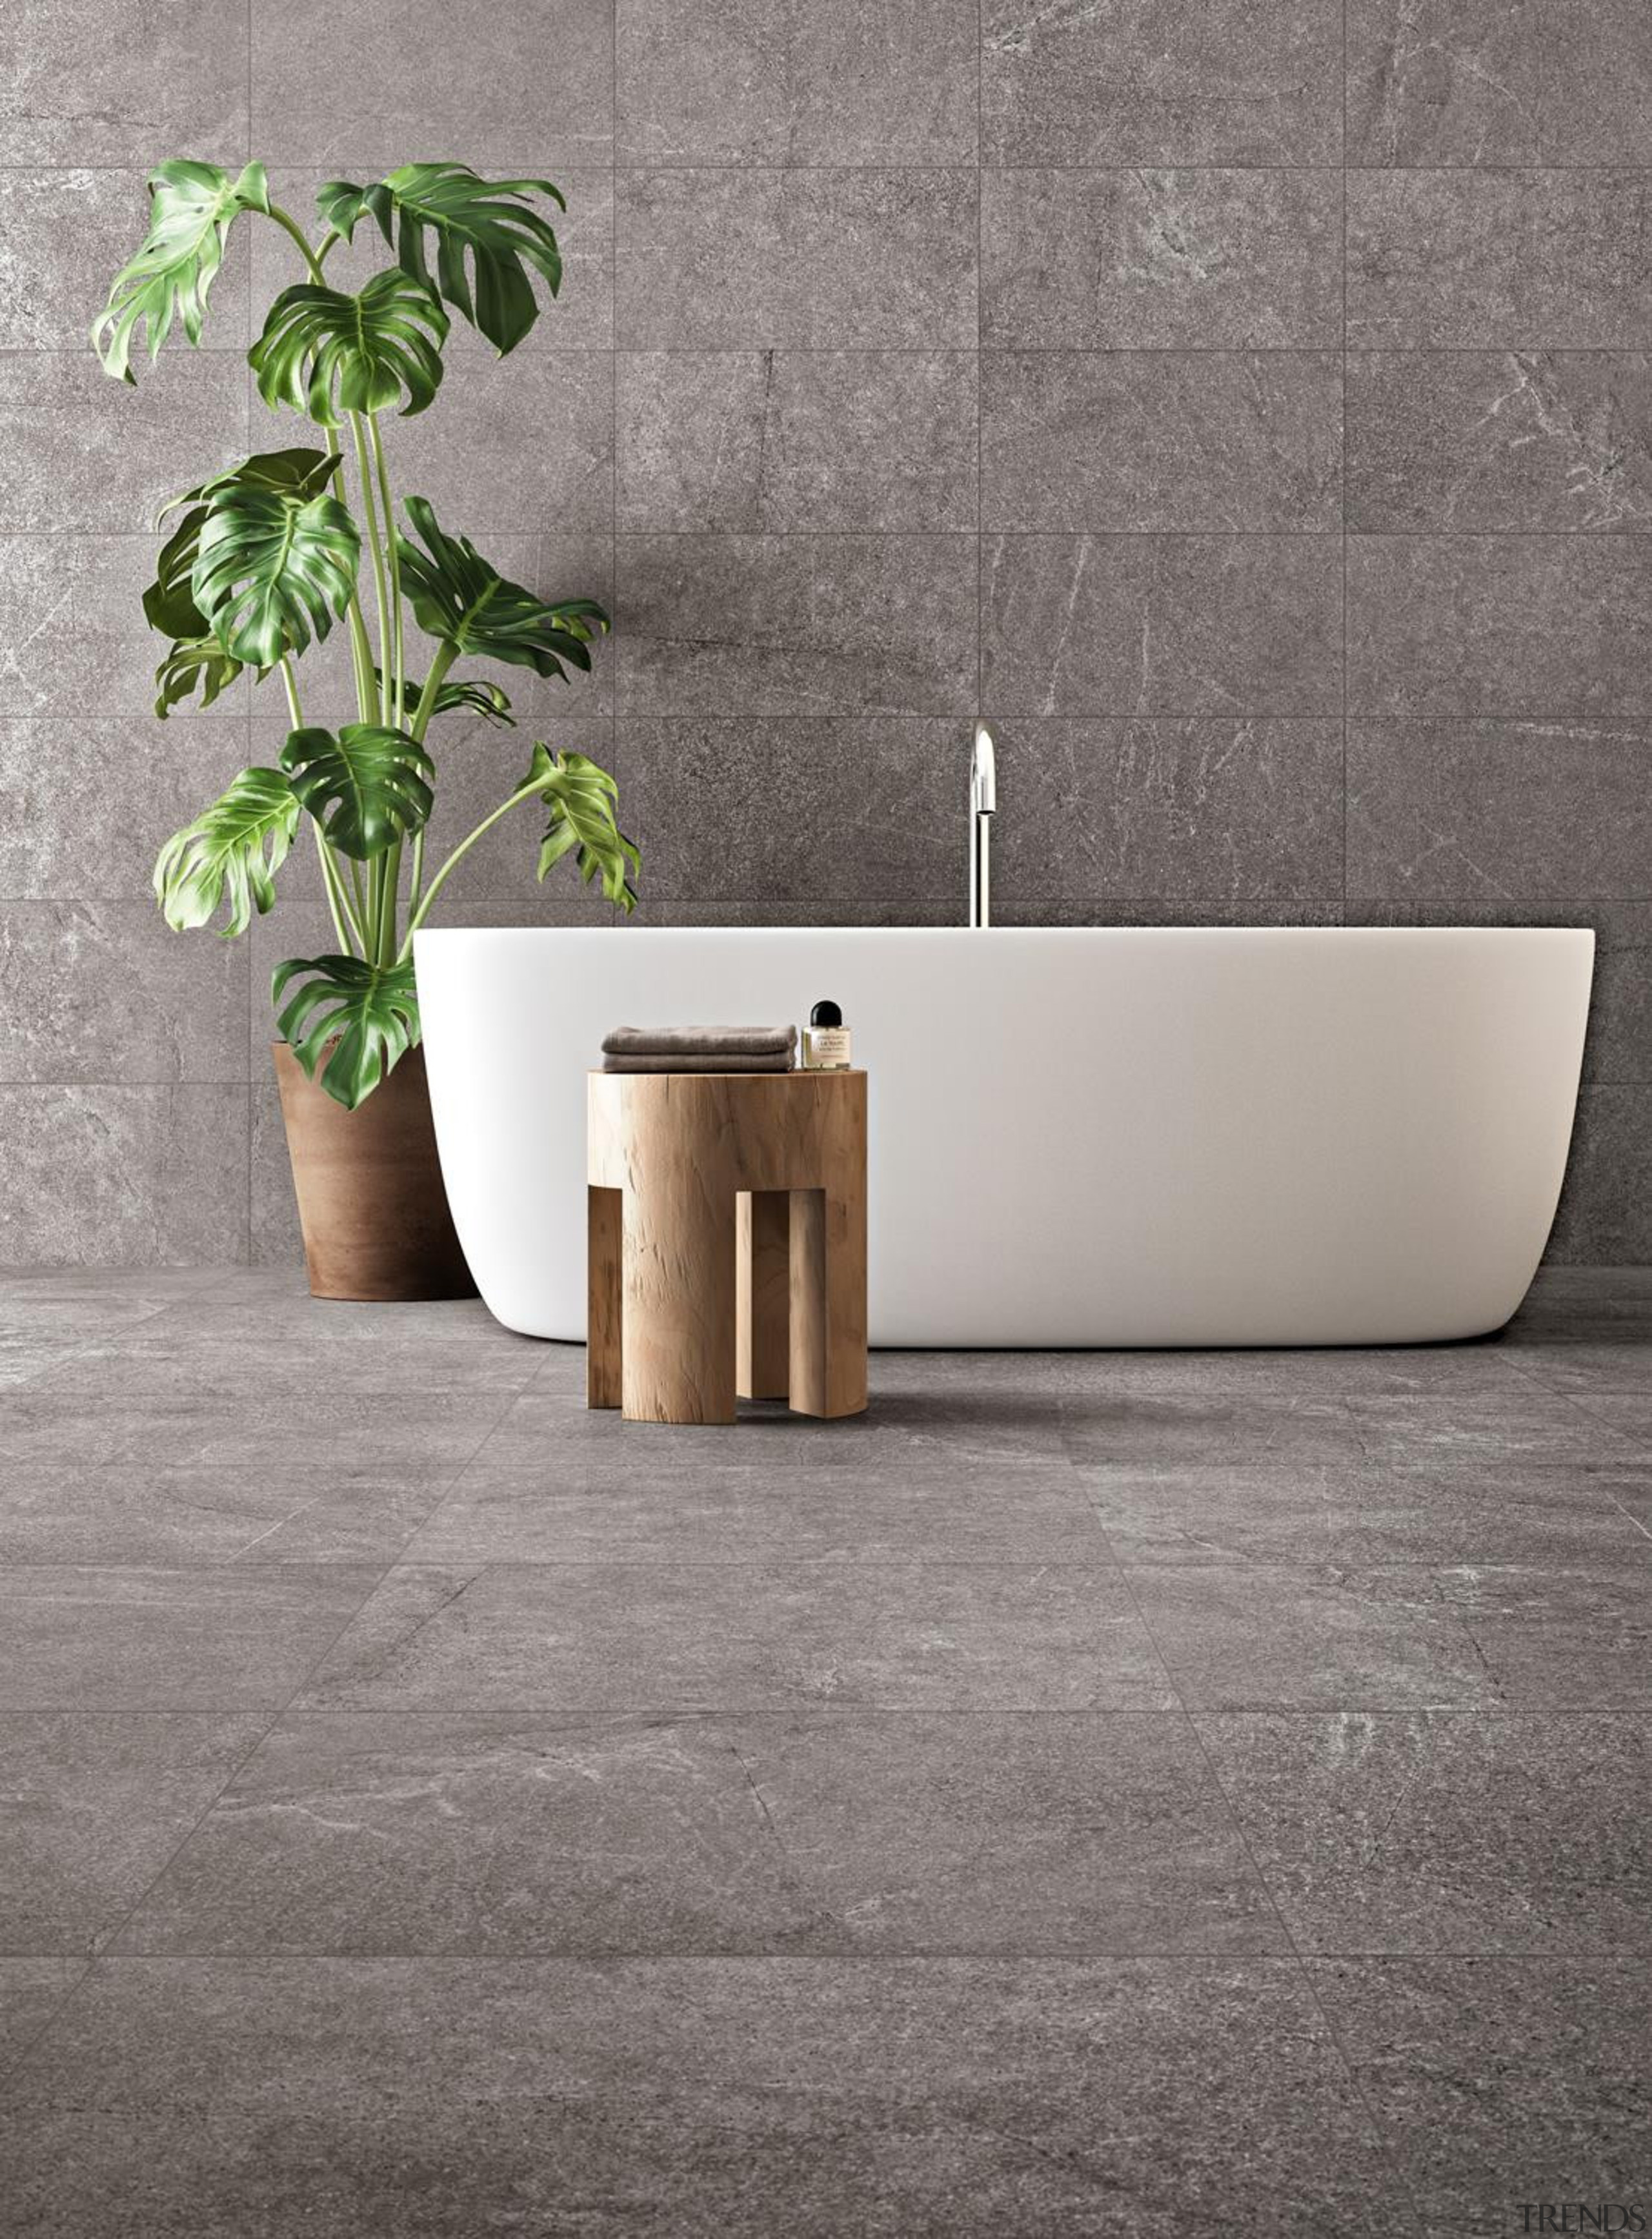 Horizon features an antibacterial shield which eliminates up angle, ceramic, floor, flooring, flowerpot, furniture, plumbing fixture, table, tap, tile, wall, gray